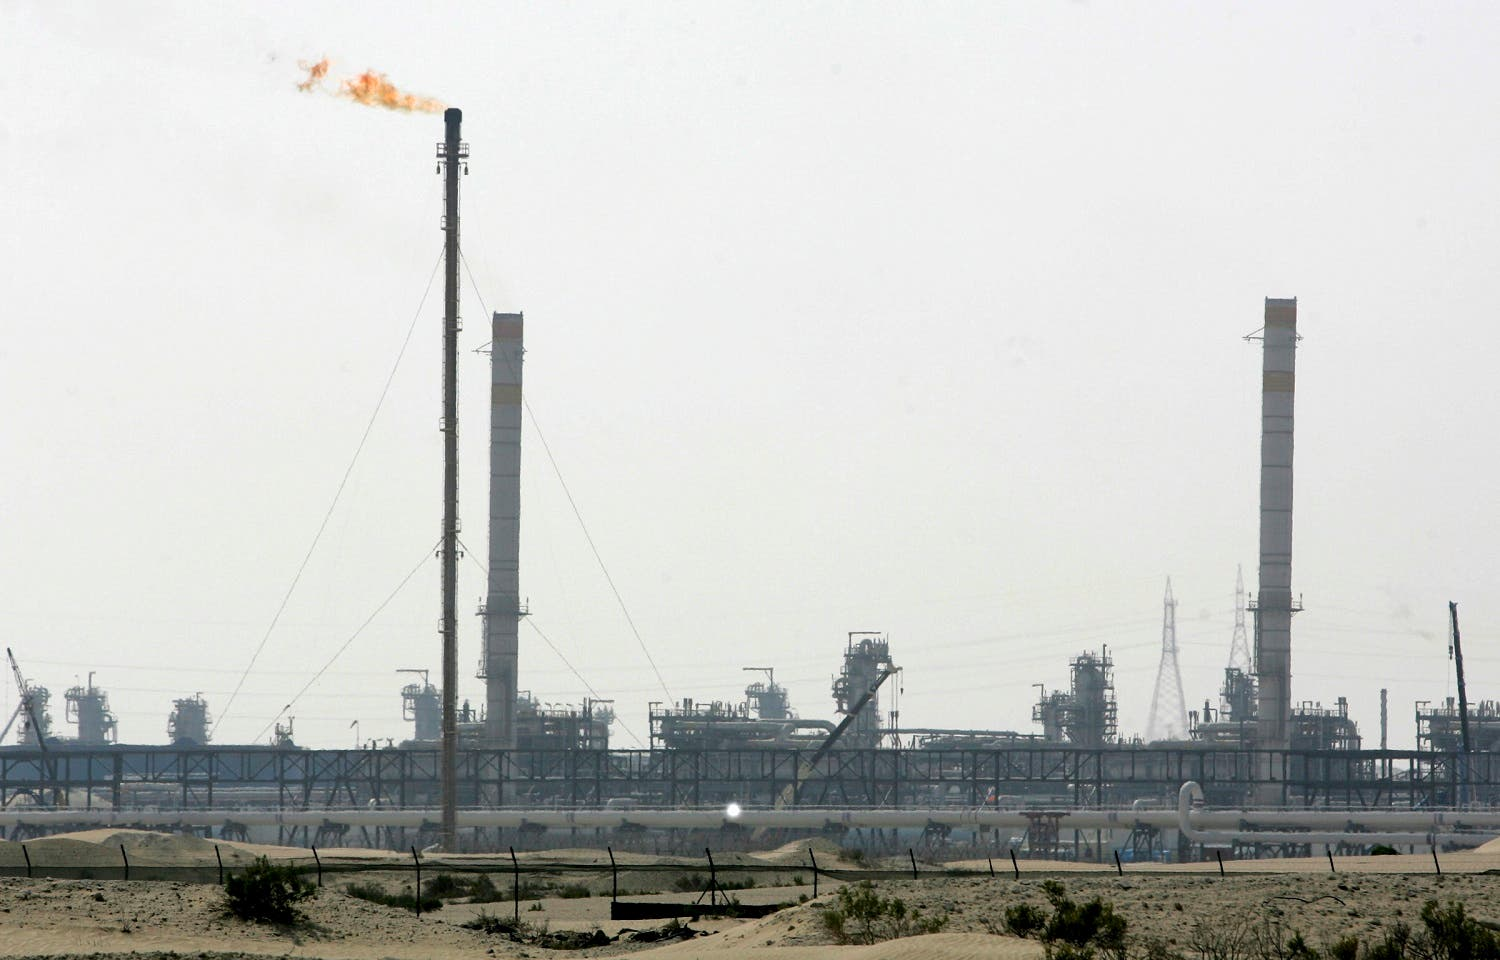 A general view shows natural gas wells at the Habshan gas complex in Abu Dhabi, January 15, 2007. (Reuters)